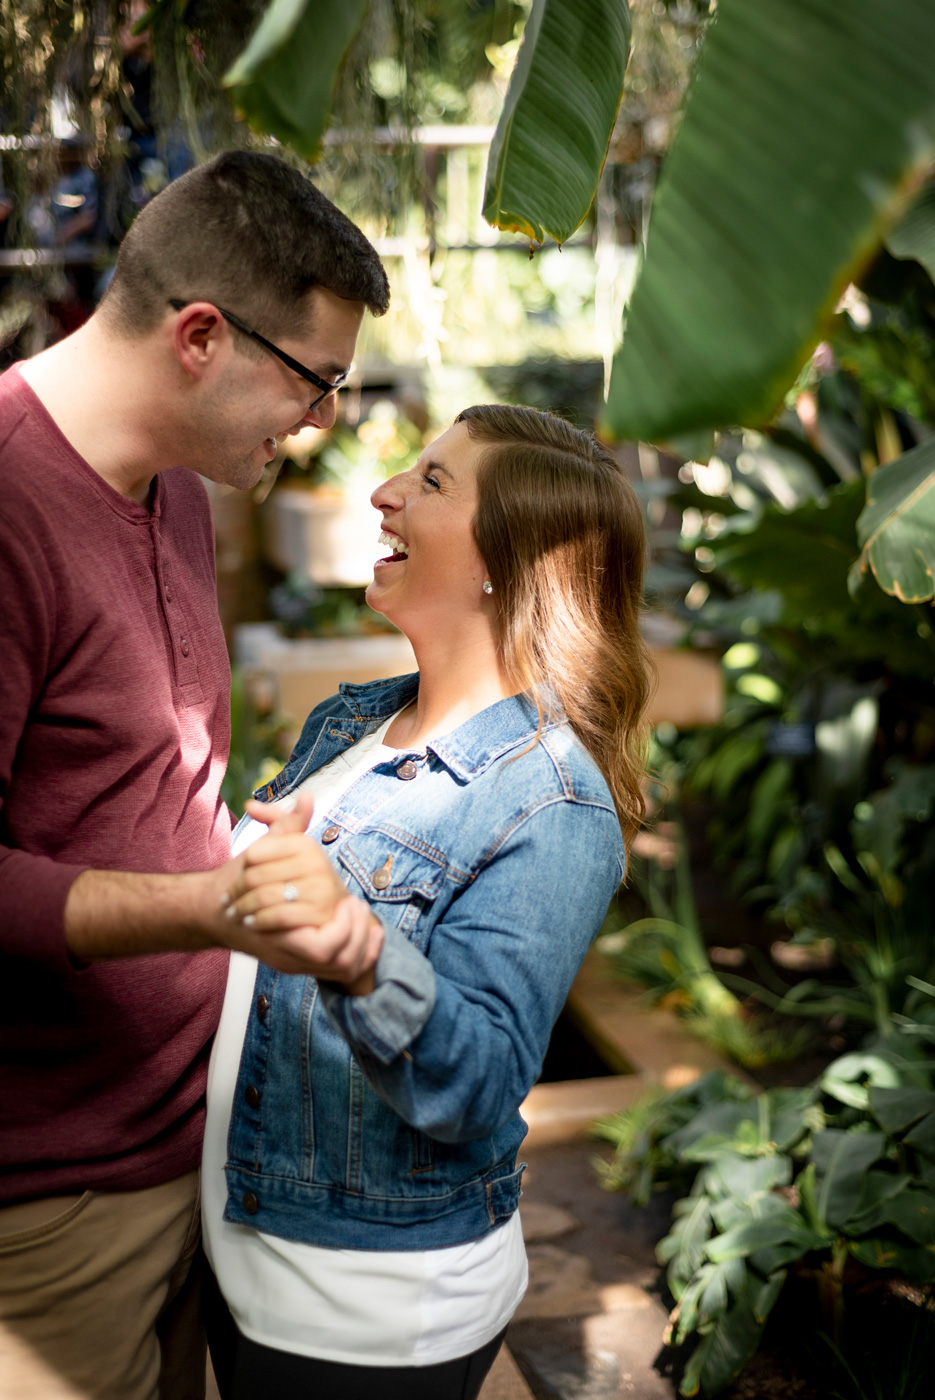 BlueVerve Studio Proposal Photography at Chicago Botanic Gardens